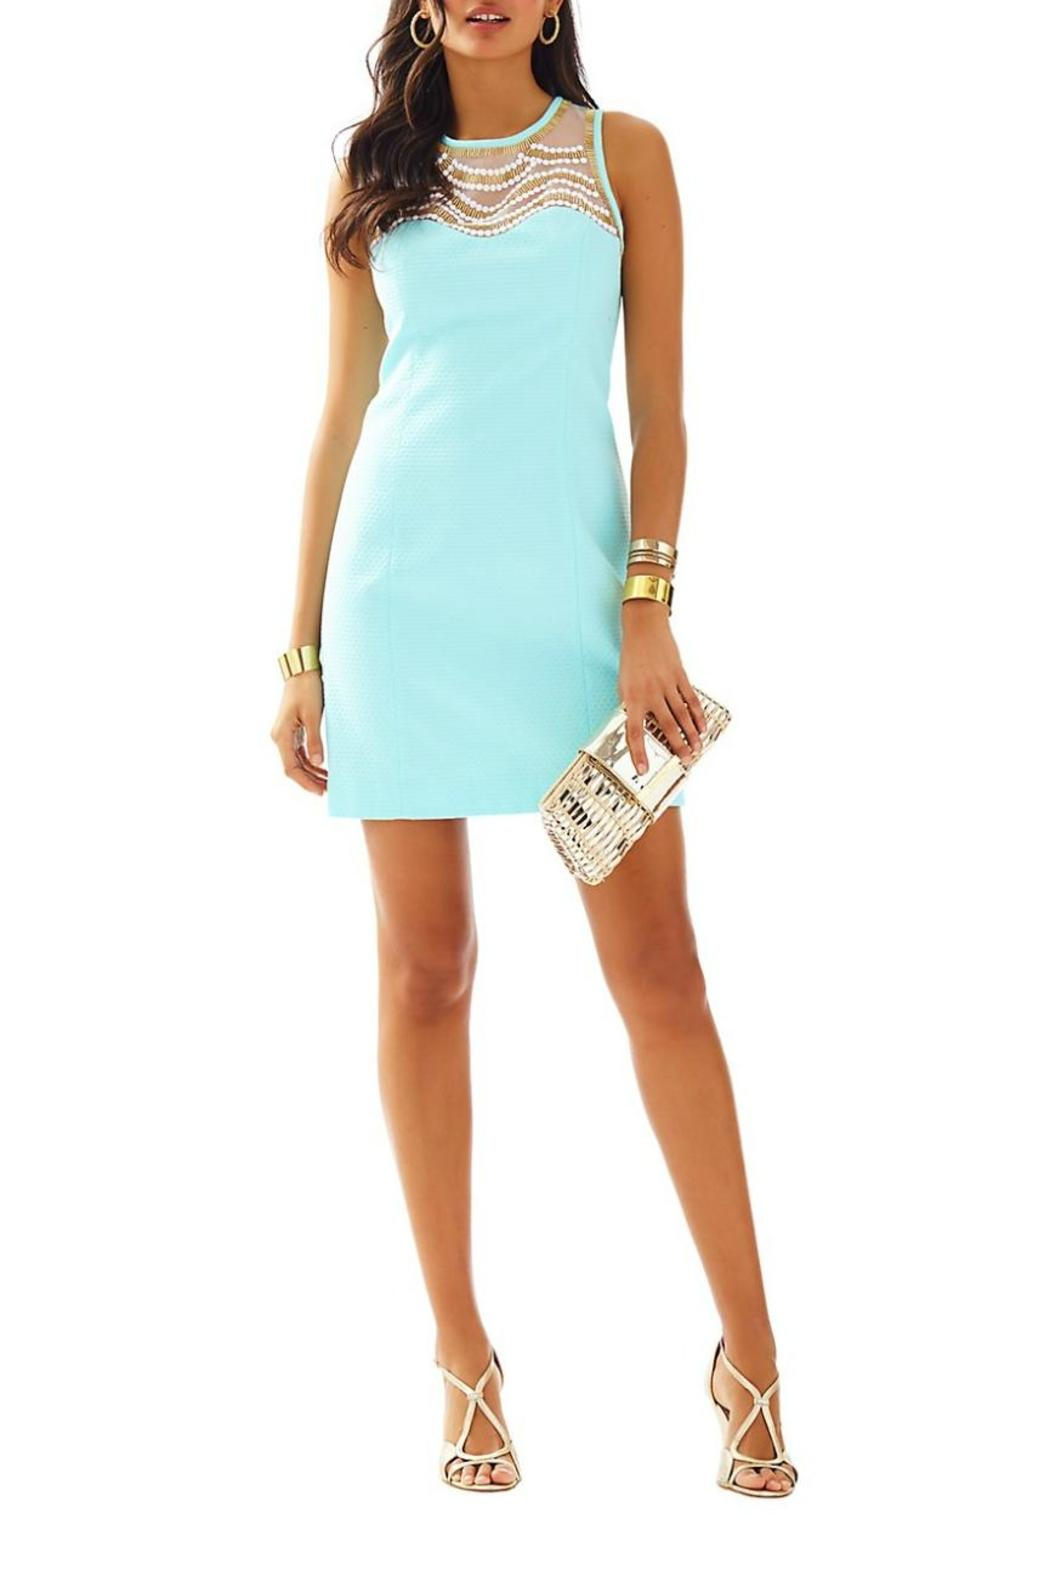 Lilly Pulitzer Tia Shift Dress from Connecticut by Seasonal ...